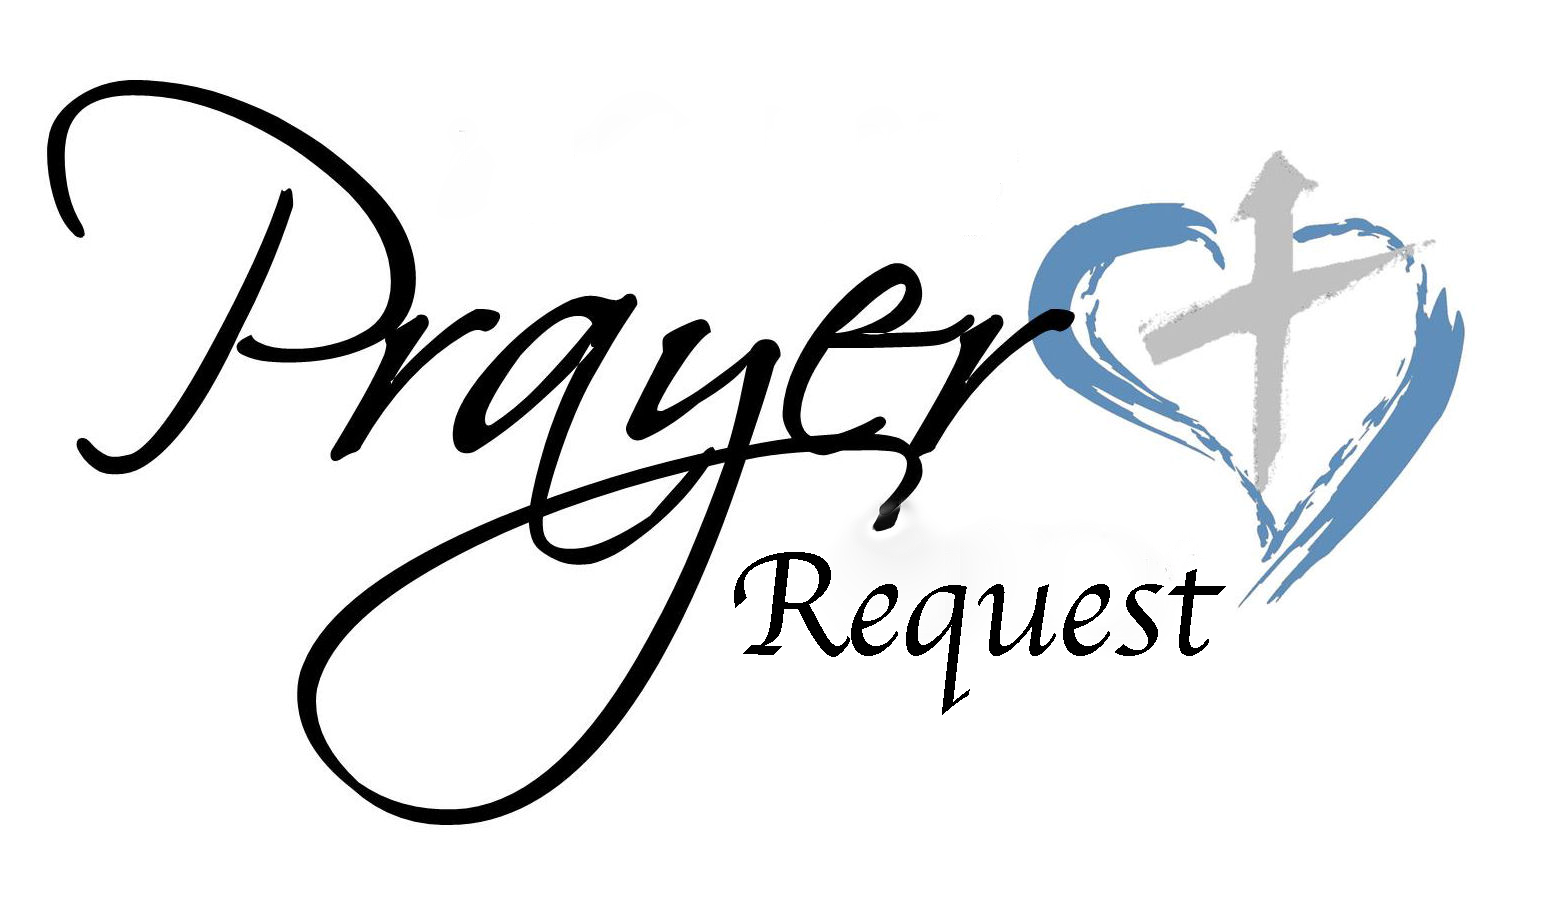 Prayer request clipart black and white vector free download Free Prayer Request Clipart vector free download